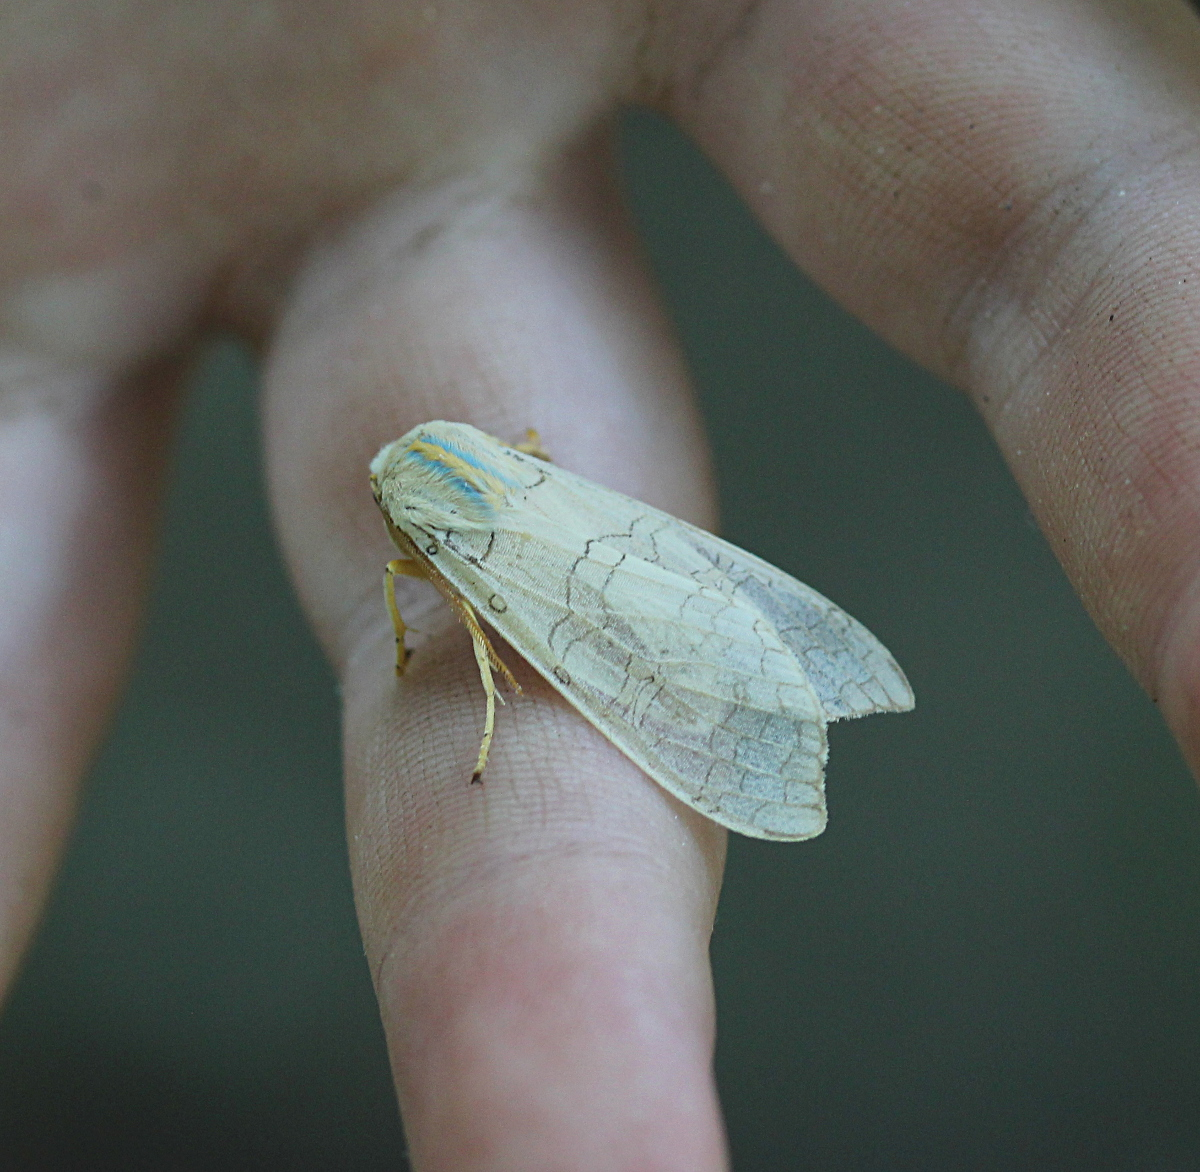 pale moth on George's hand